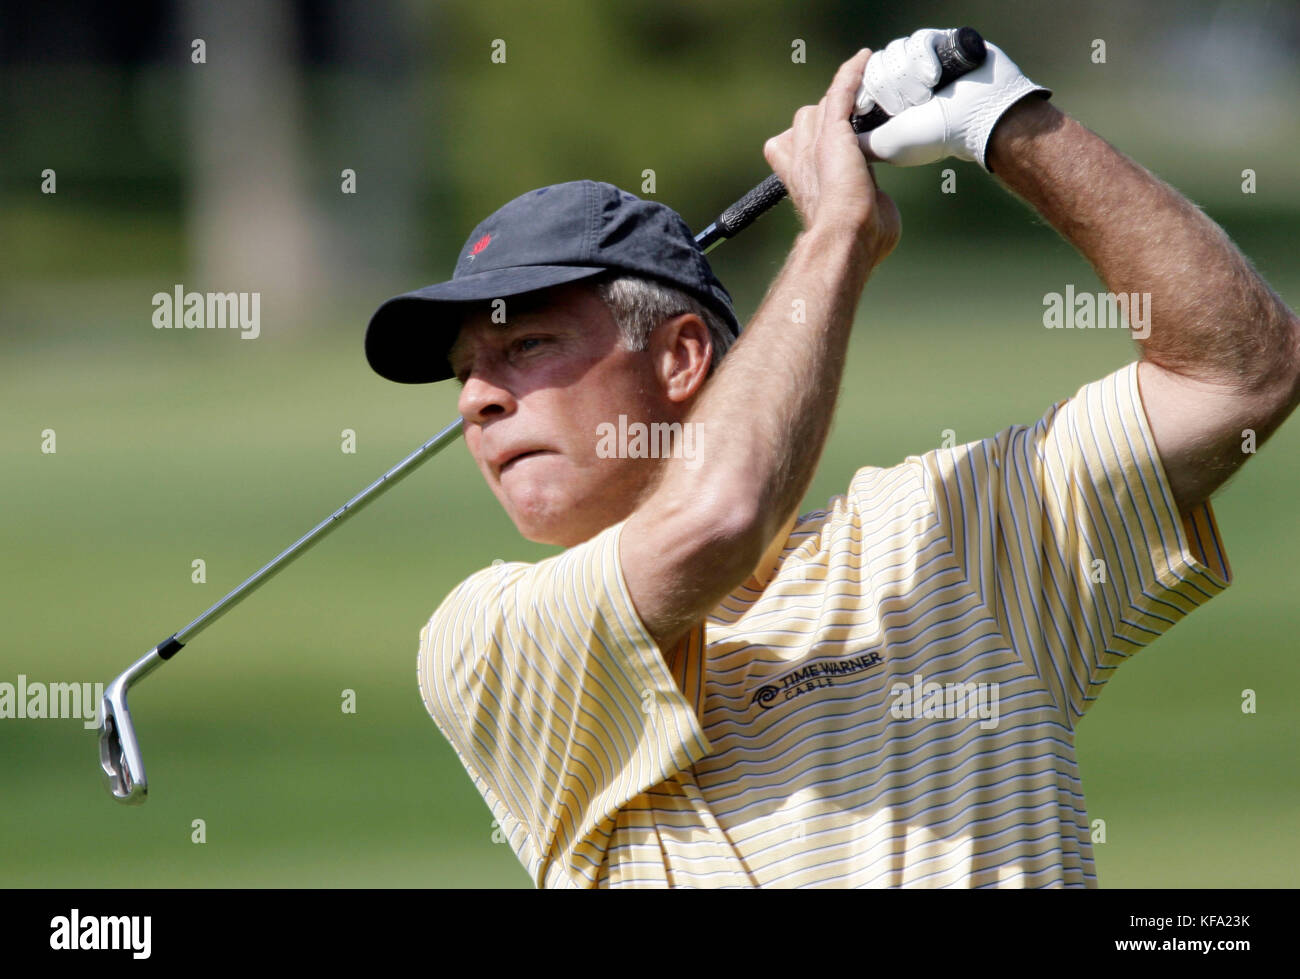 Ben Crenshaw watches his shot from the fifth fairway during the second round of the Champions Tour's Toshiba - Stock Image